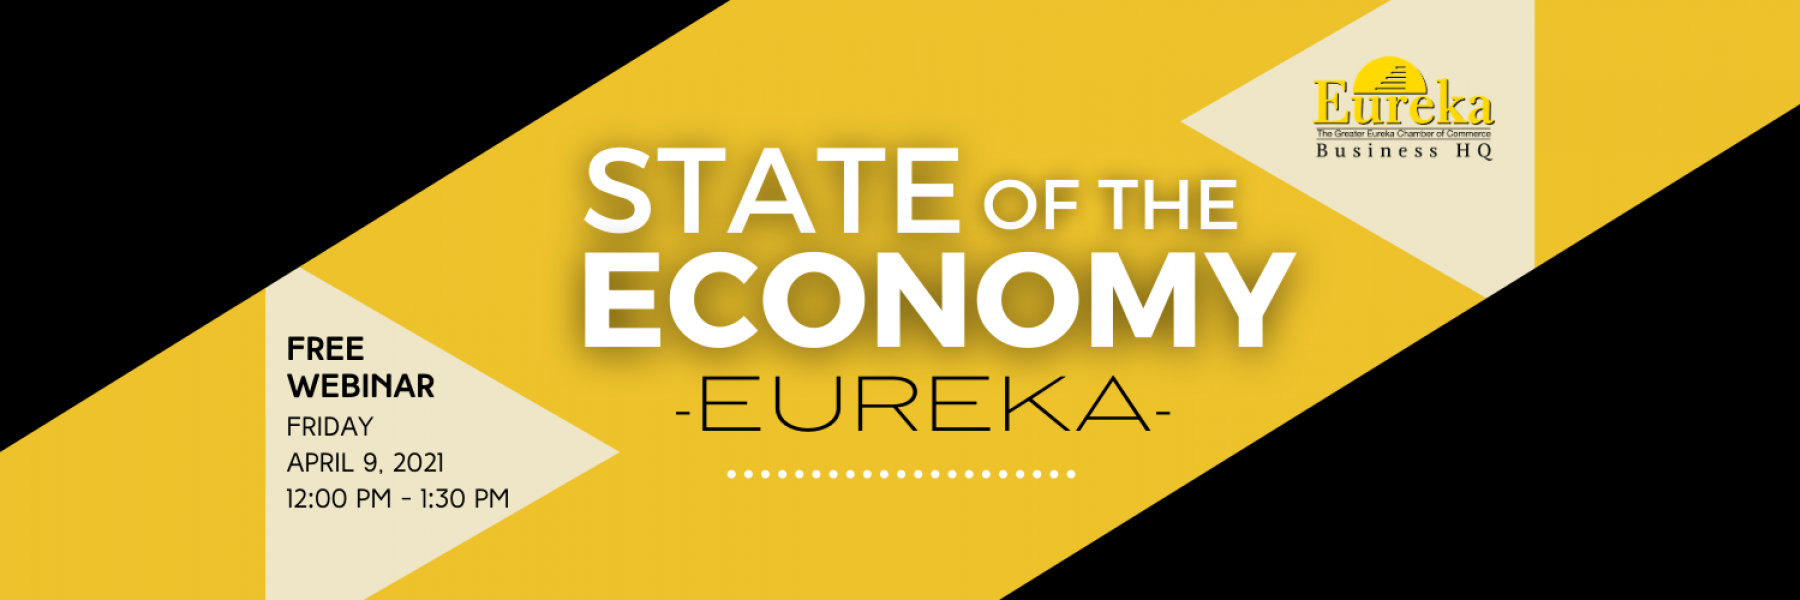 eureka chamber state of the economy event humboldt county